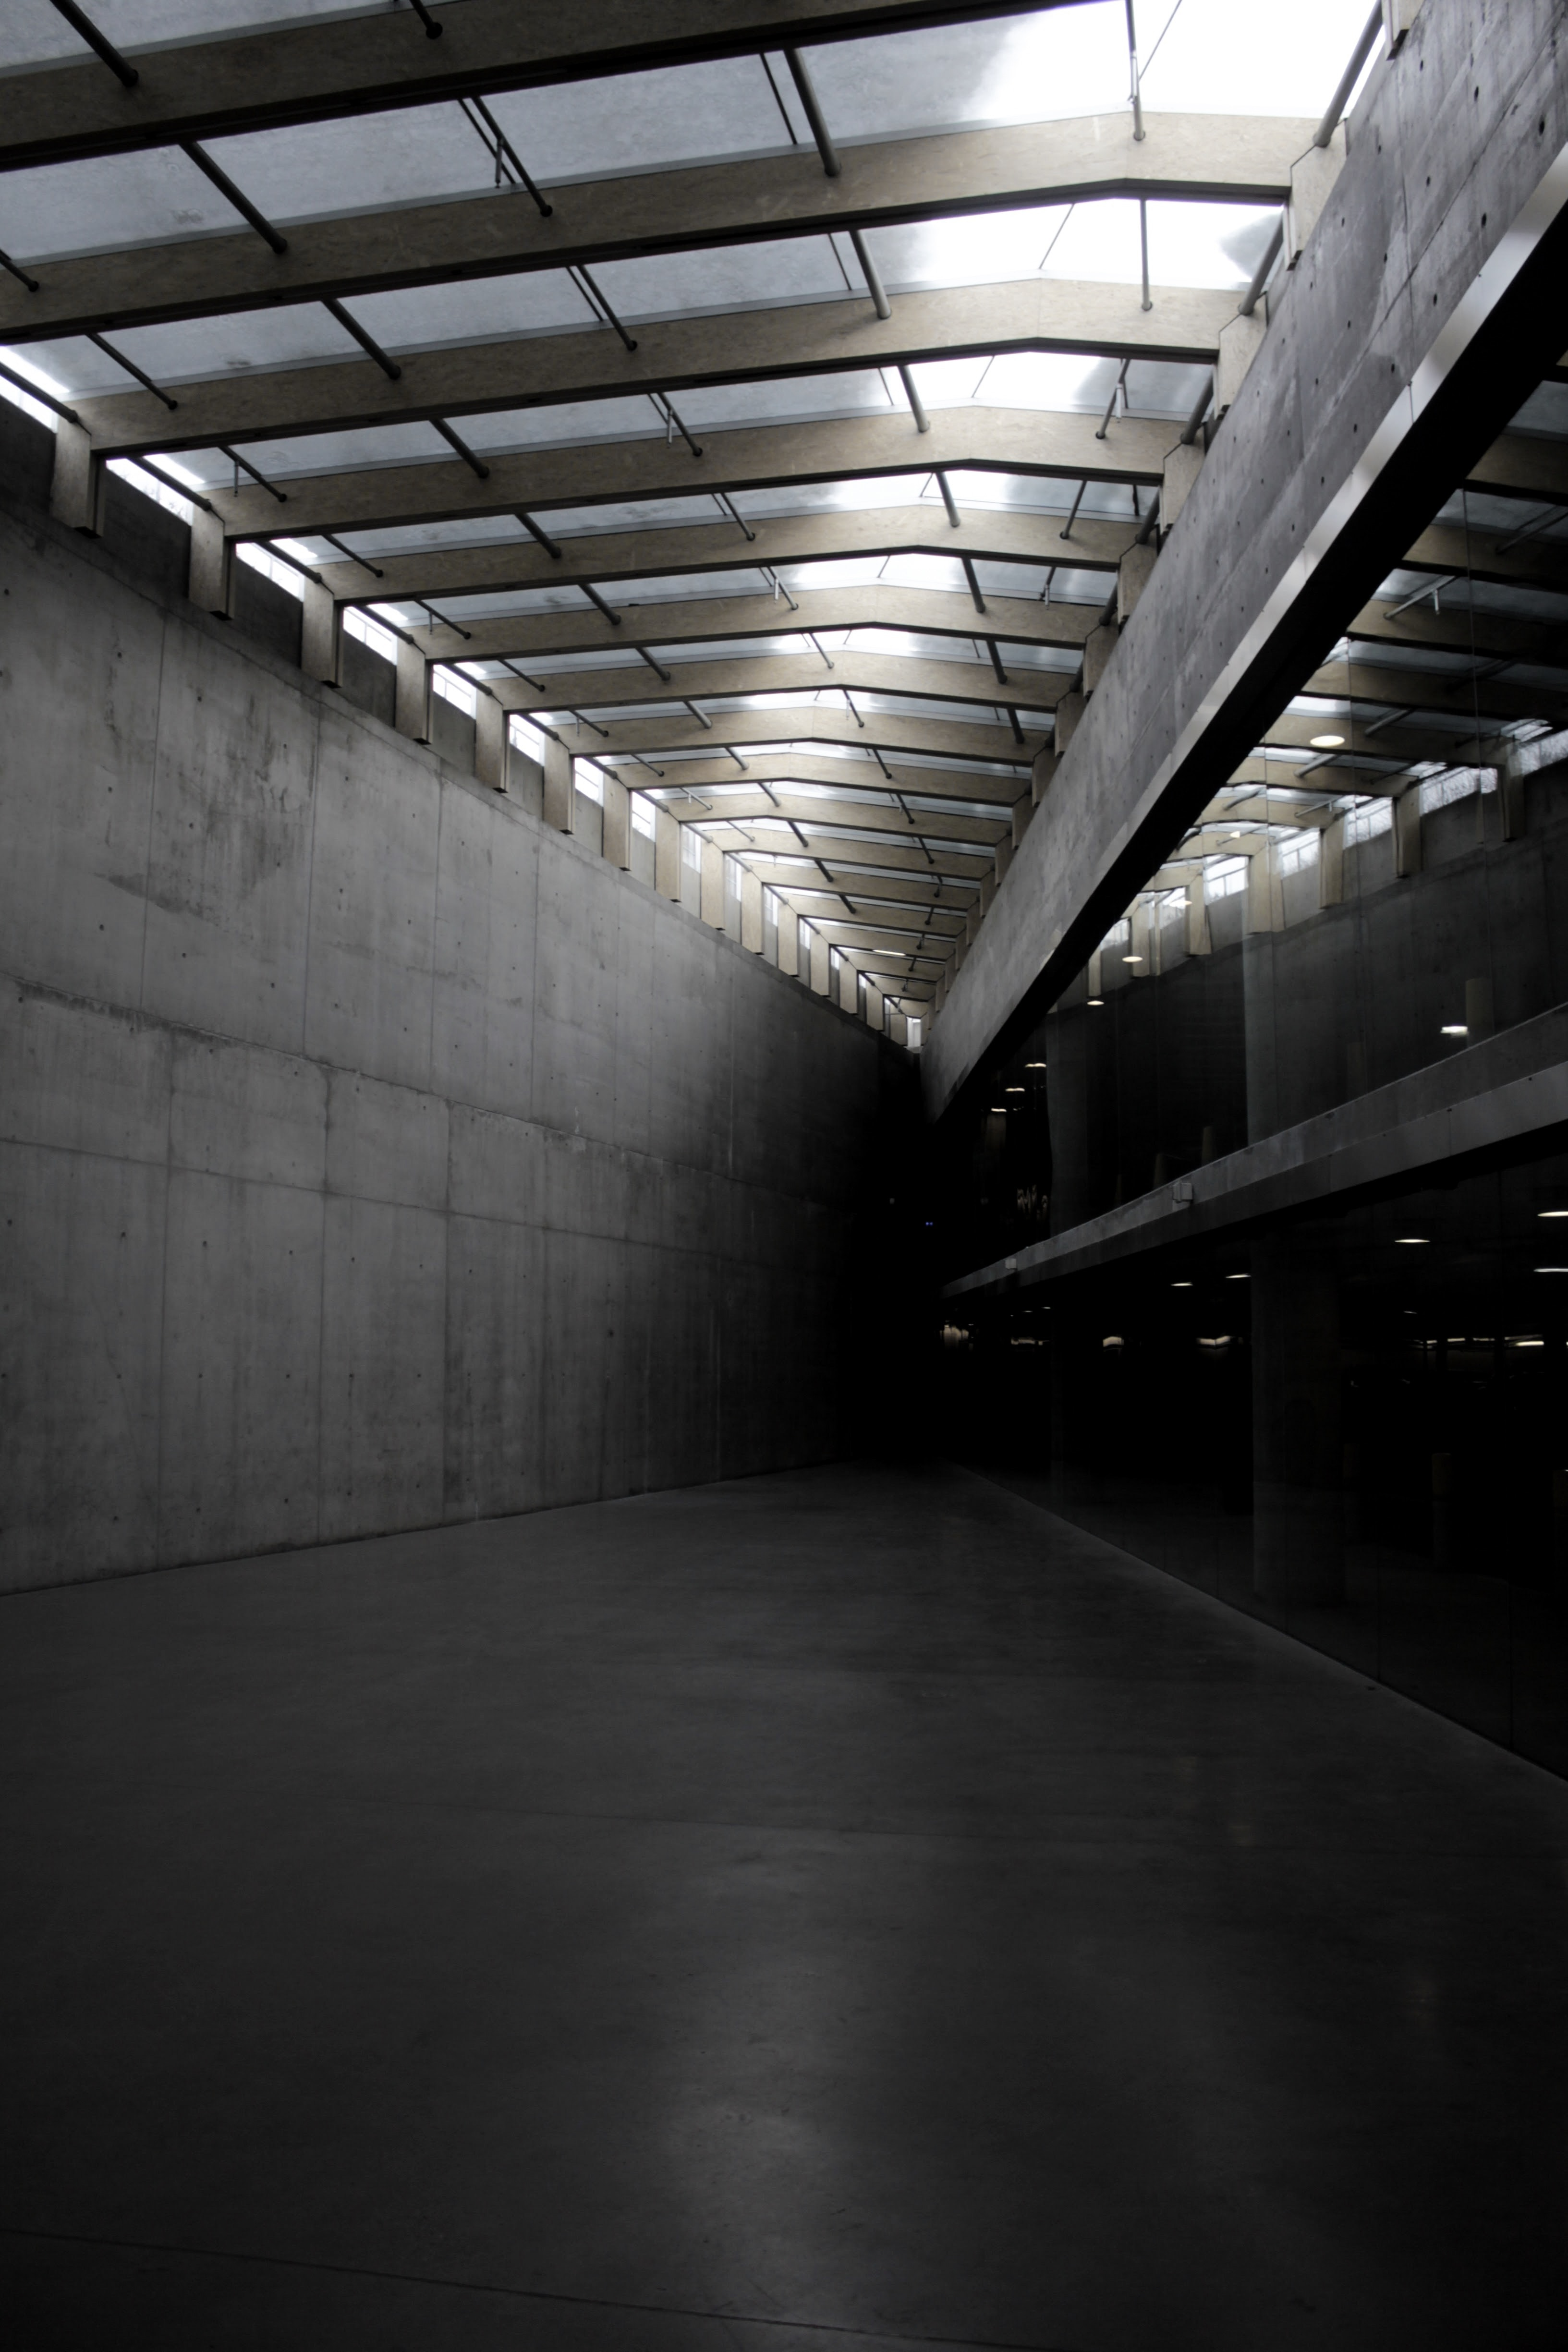 A dark corner in a vast concrete building with a skylight